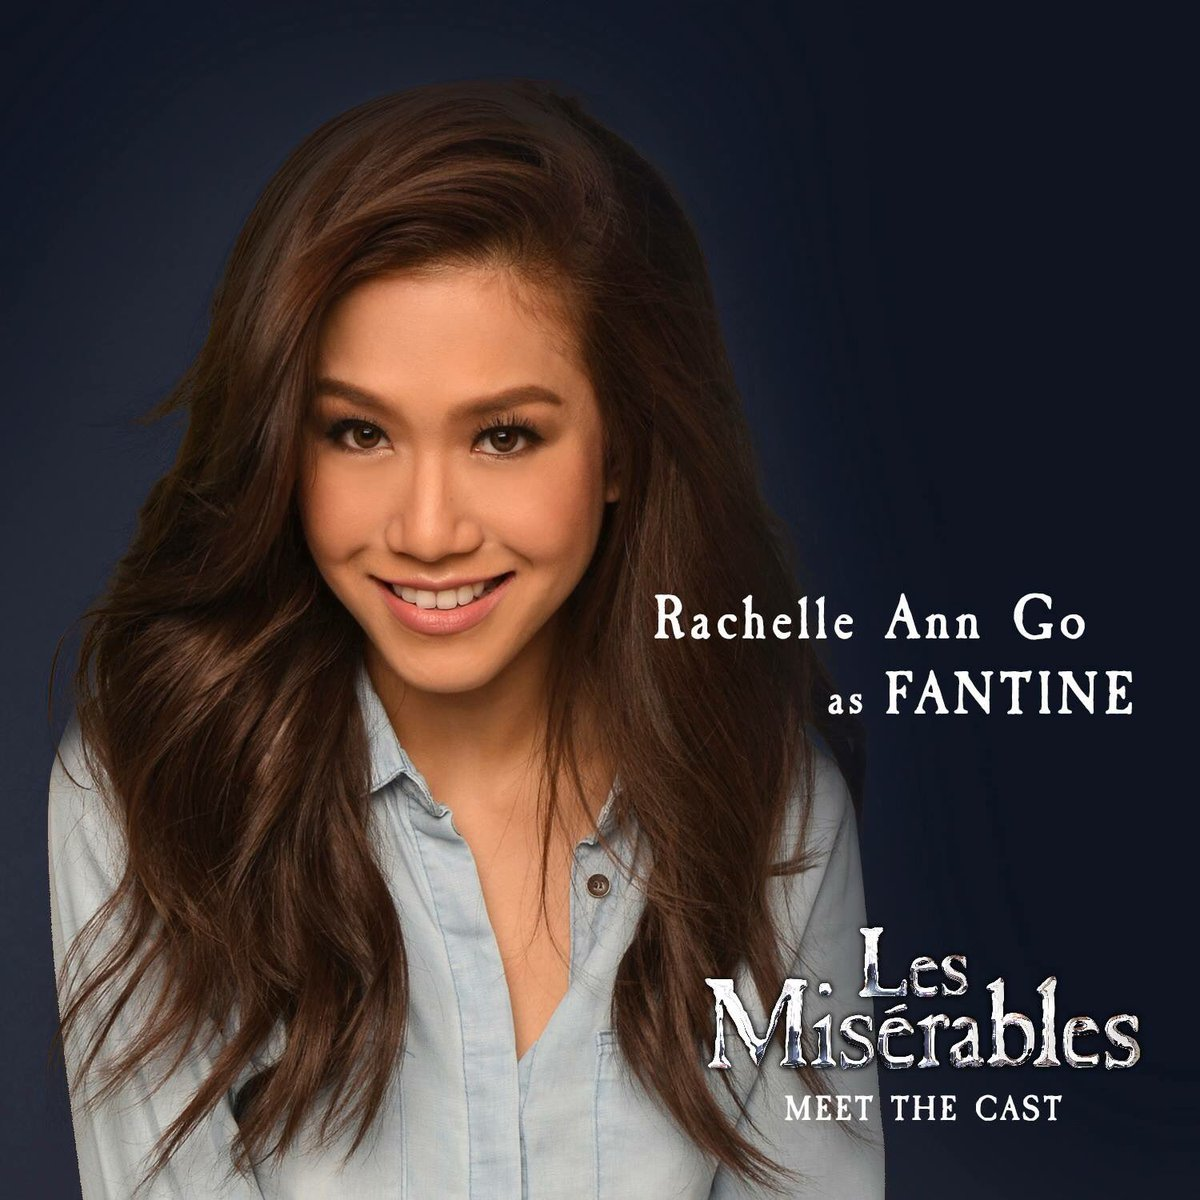 Call (+632) 891-9999 or go online to https://t.co/604iCSP8RS NOW to purchase your tickets!!! @gorachelleann https://t.co/qQlCIILbMs